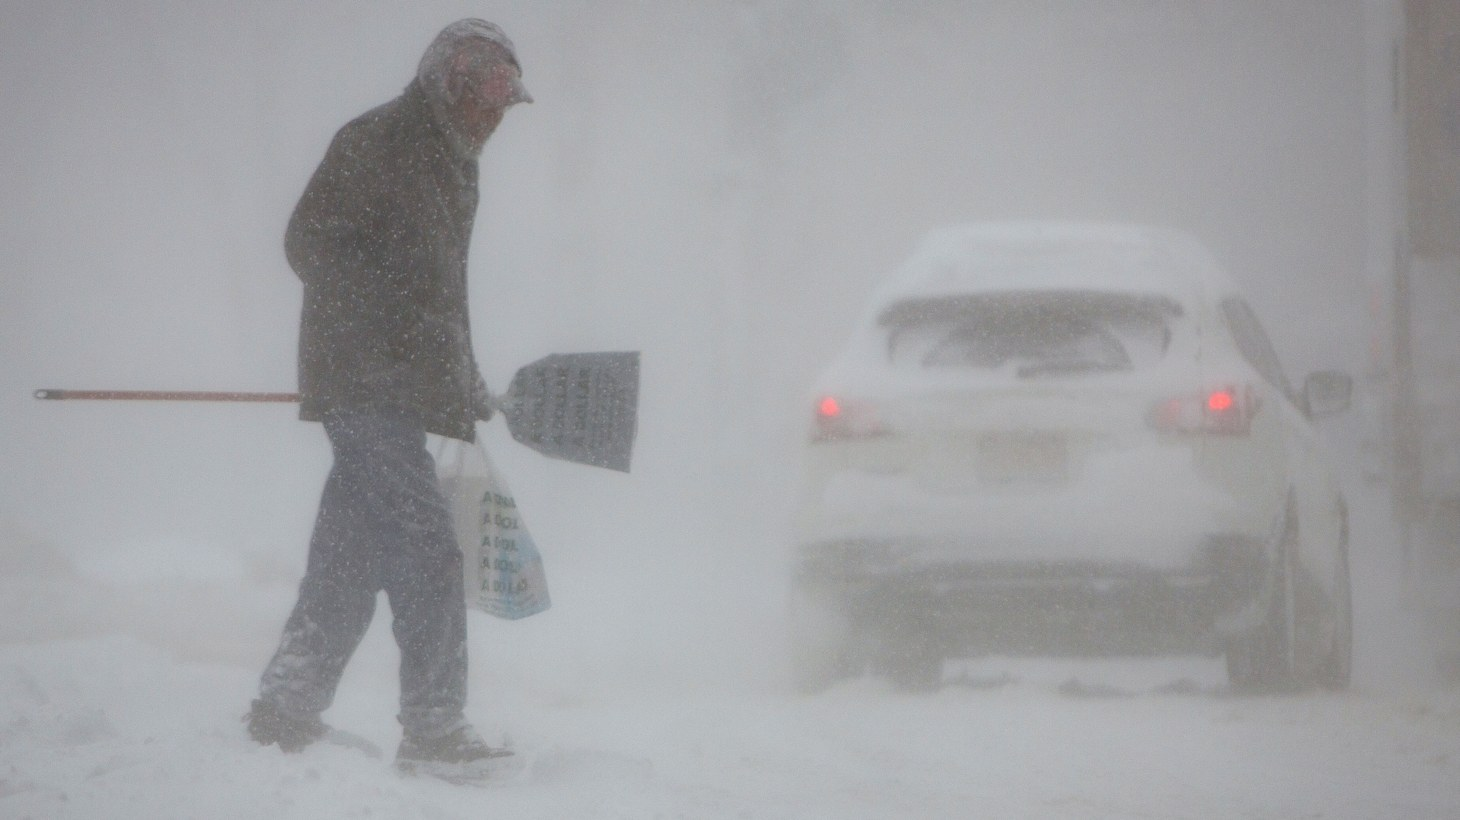 A man crosses a street in whiteout conditions during a winter storm in Buffalo, New York, U.S., January 30, 2019.